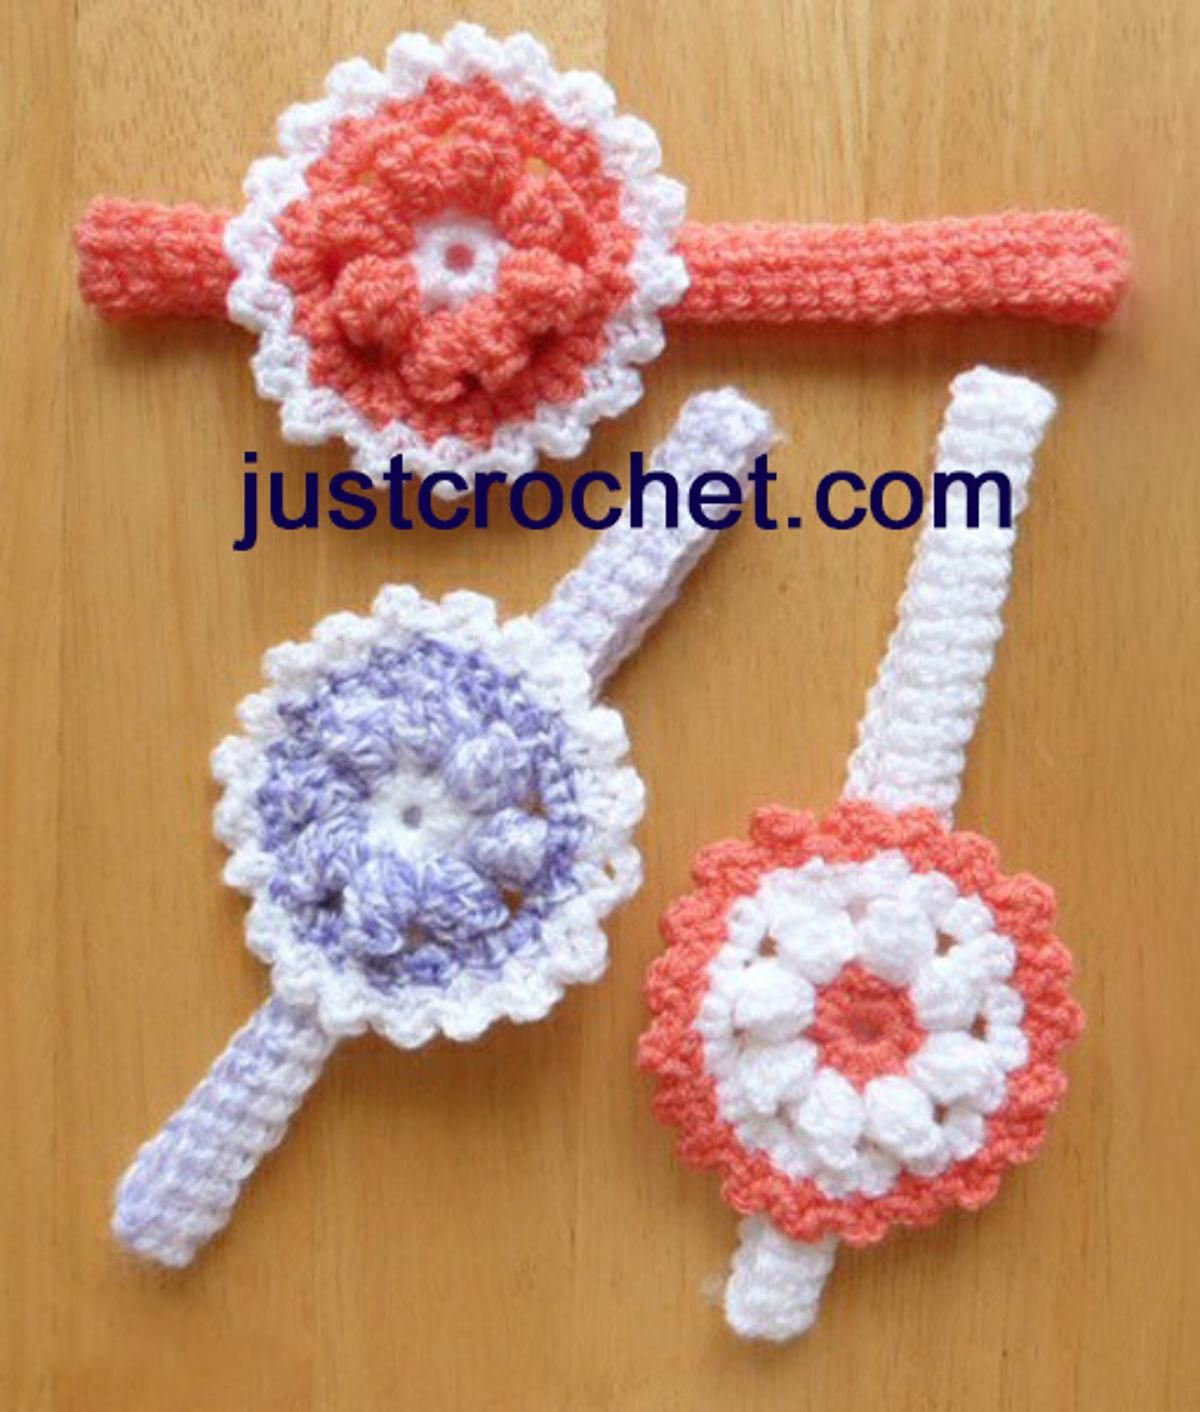 fjc123-Headband with Flower Baby Crochet Pattern | Craftsy ...